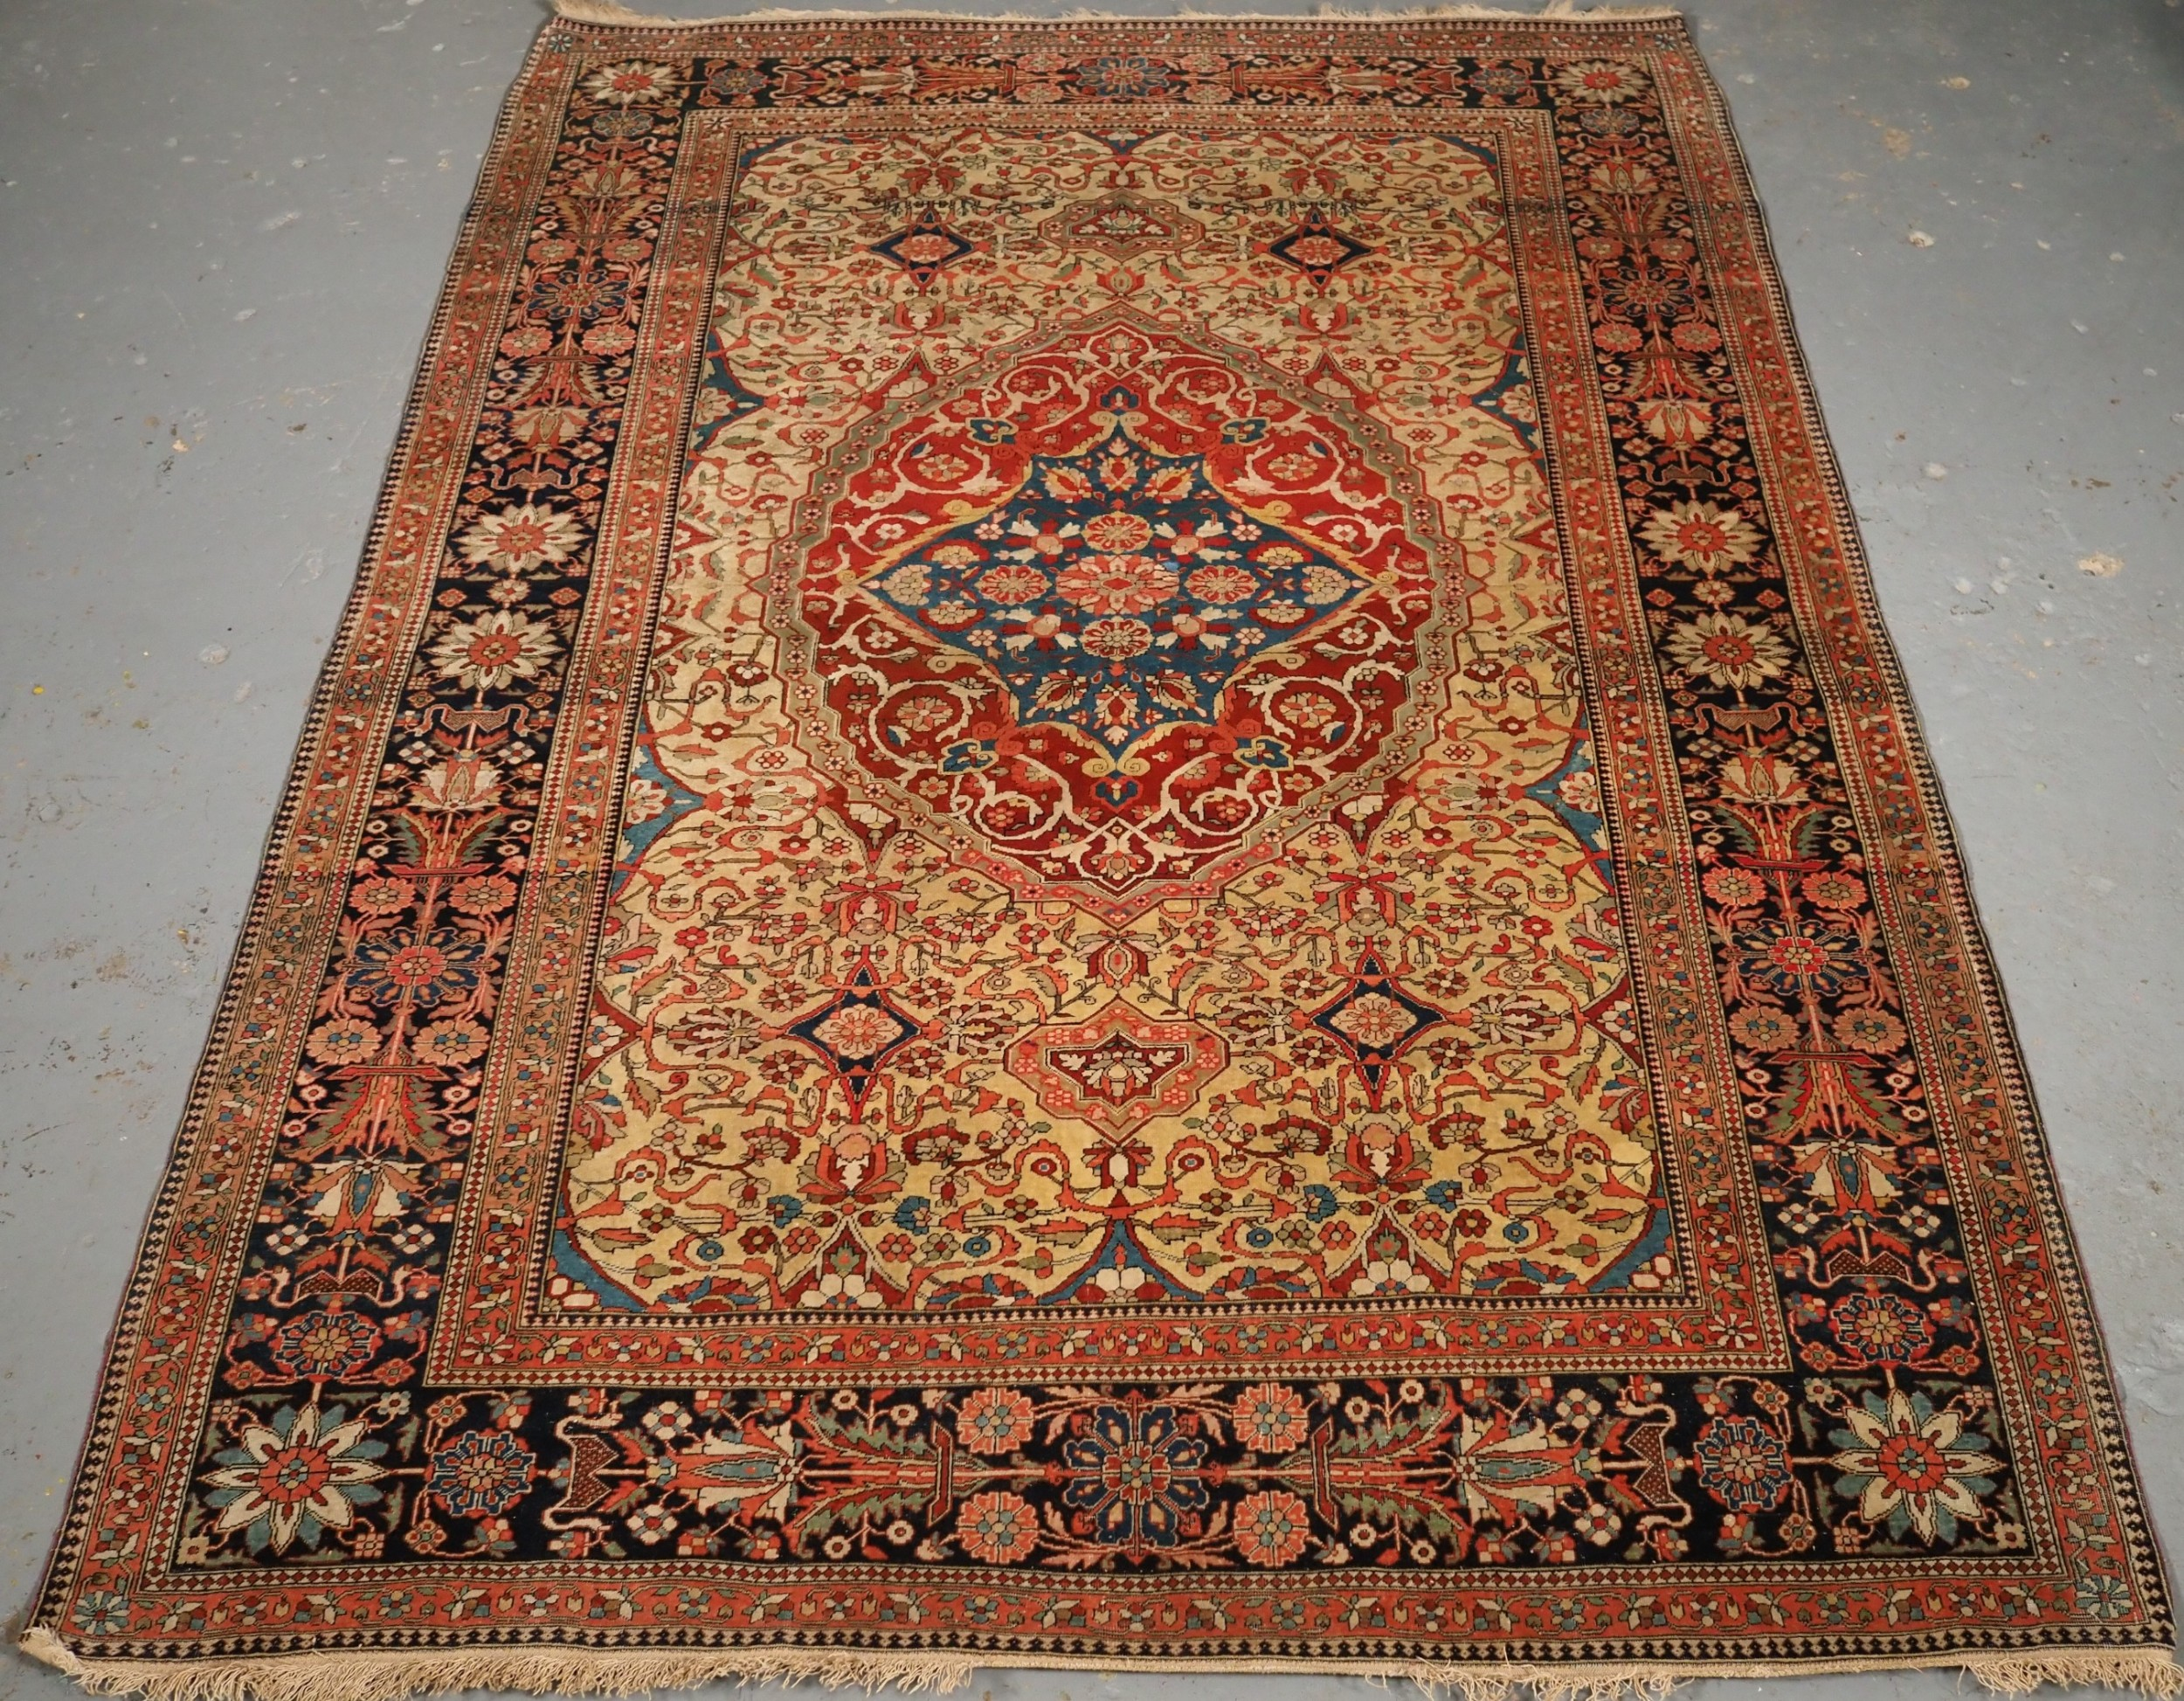 antique mohtasham kashan rug outstanding colour and condition circa 1890